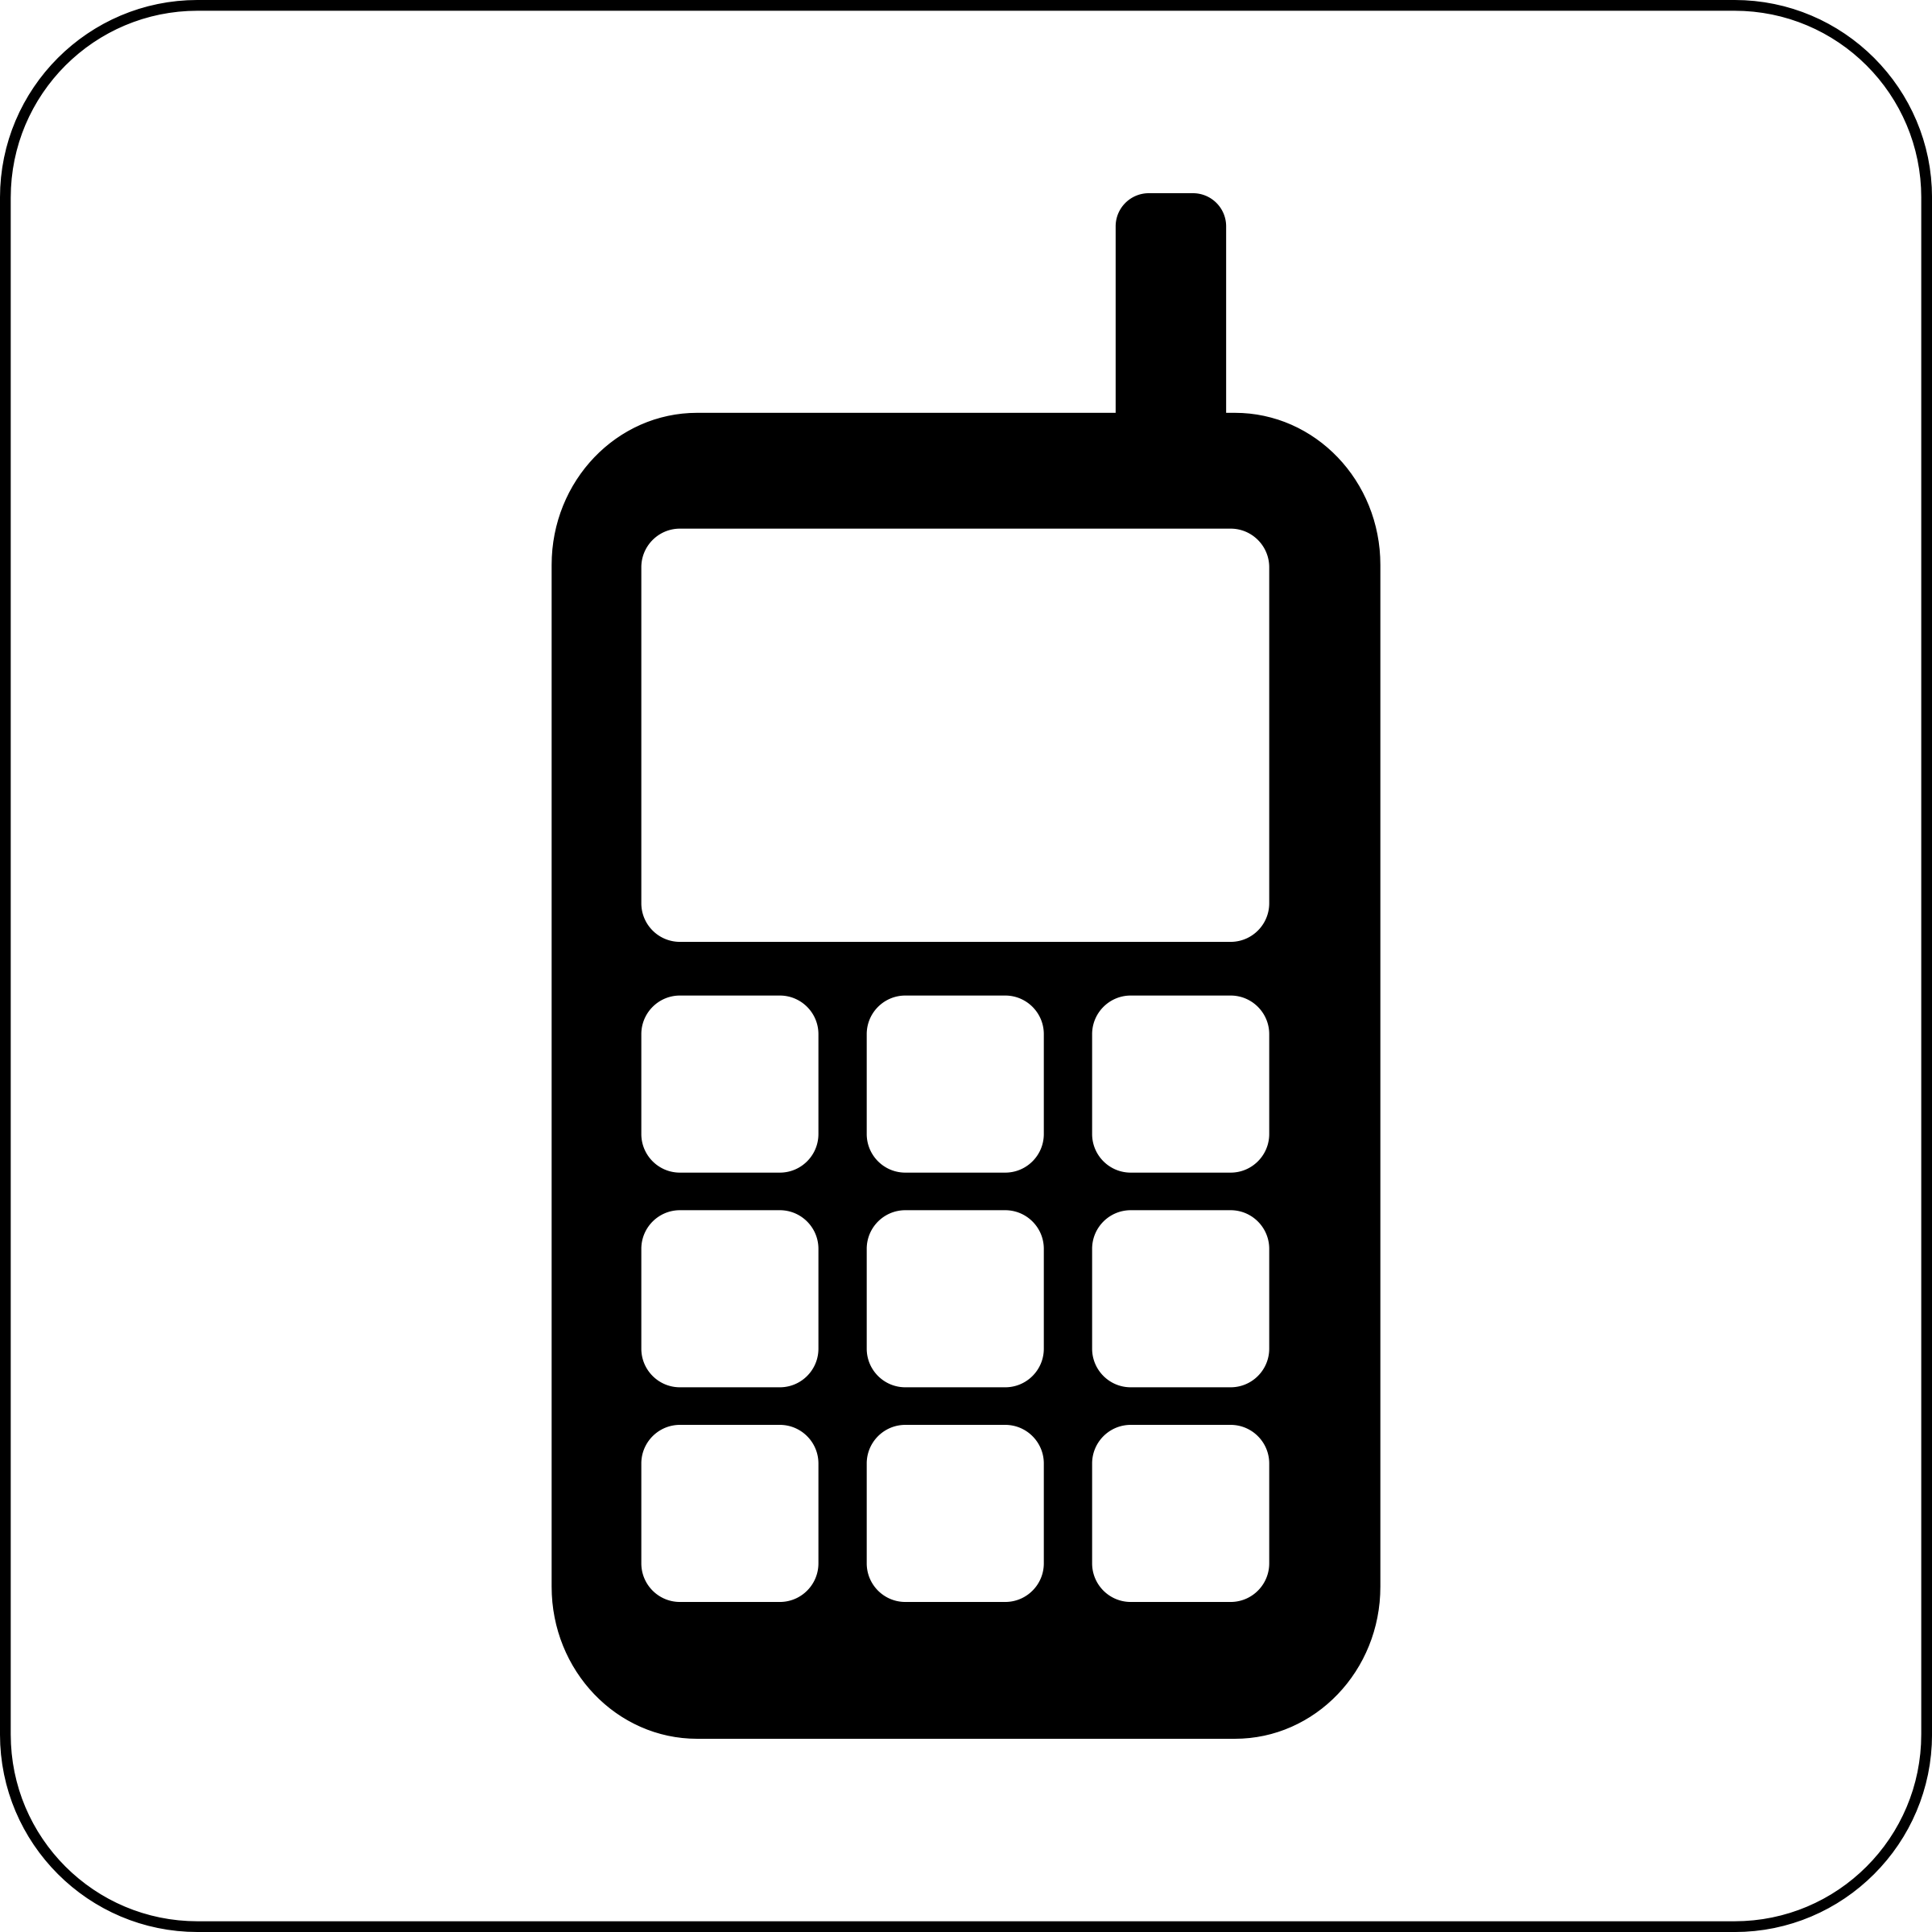 Free Phone Icon Cliparts, Download Free Clip Art, Free Clip Art on ... transparent stock